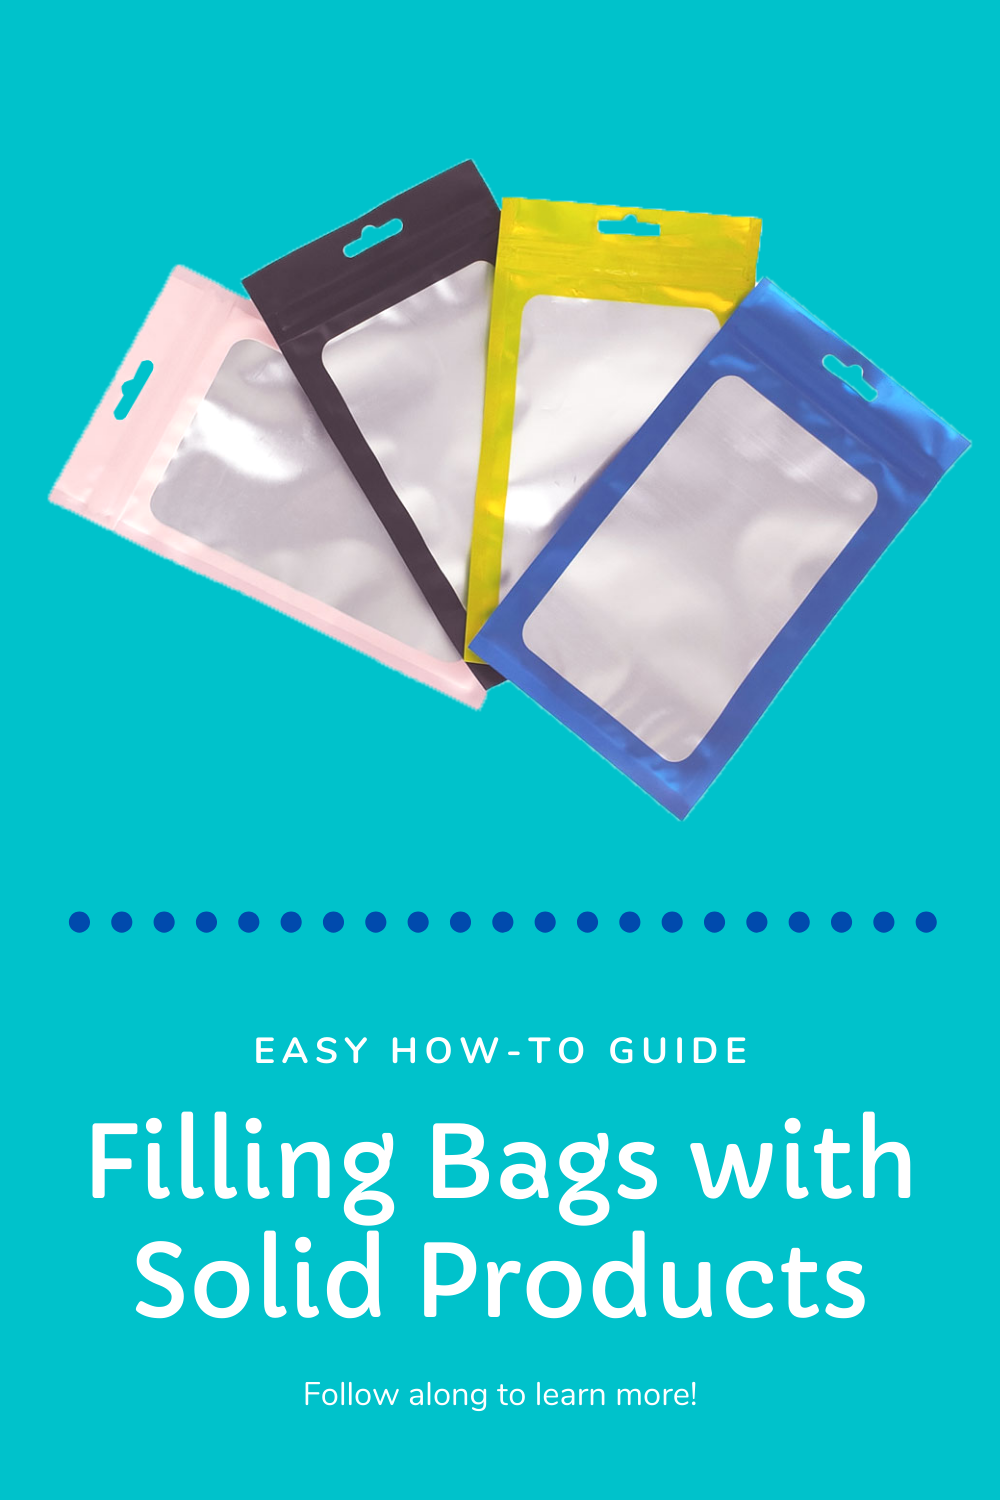 How to Fill Bags with Solid Products